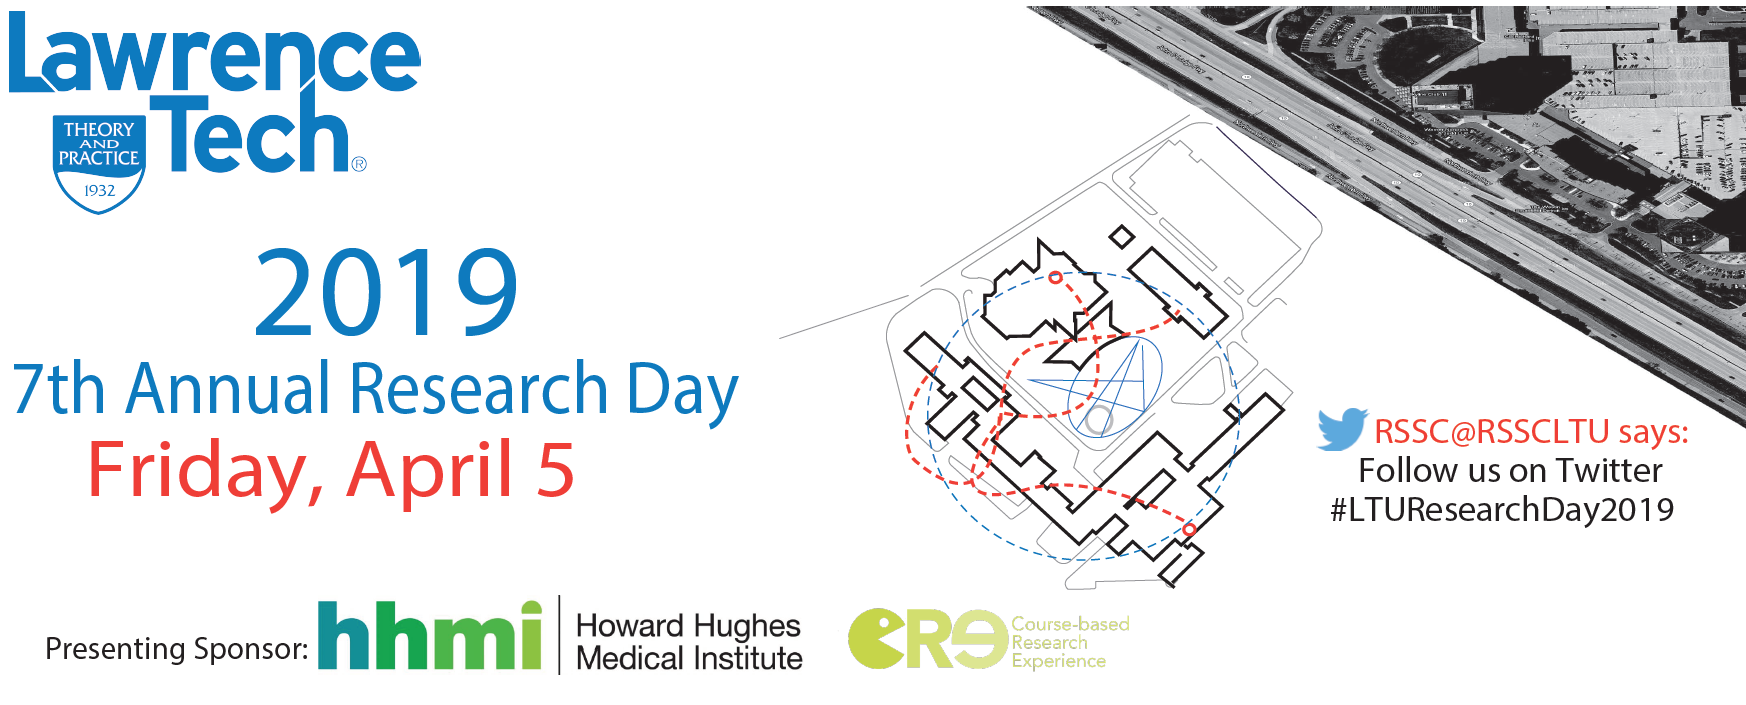 7th Annual Research Day